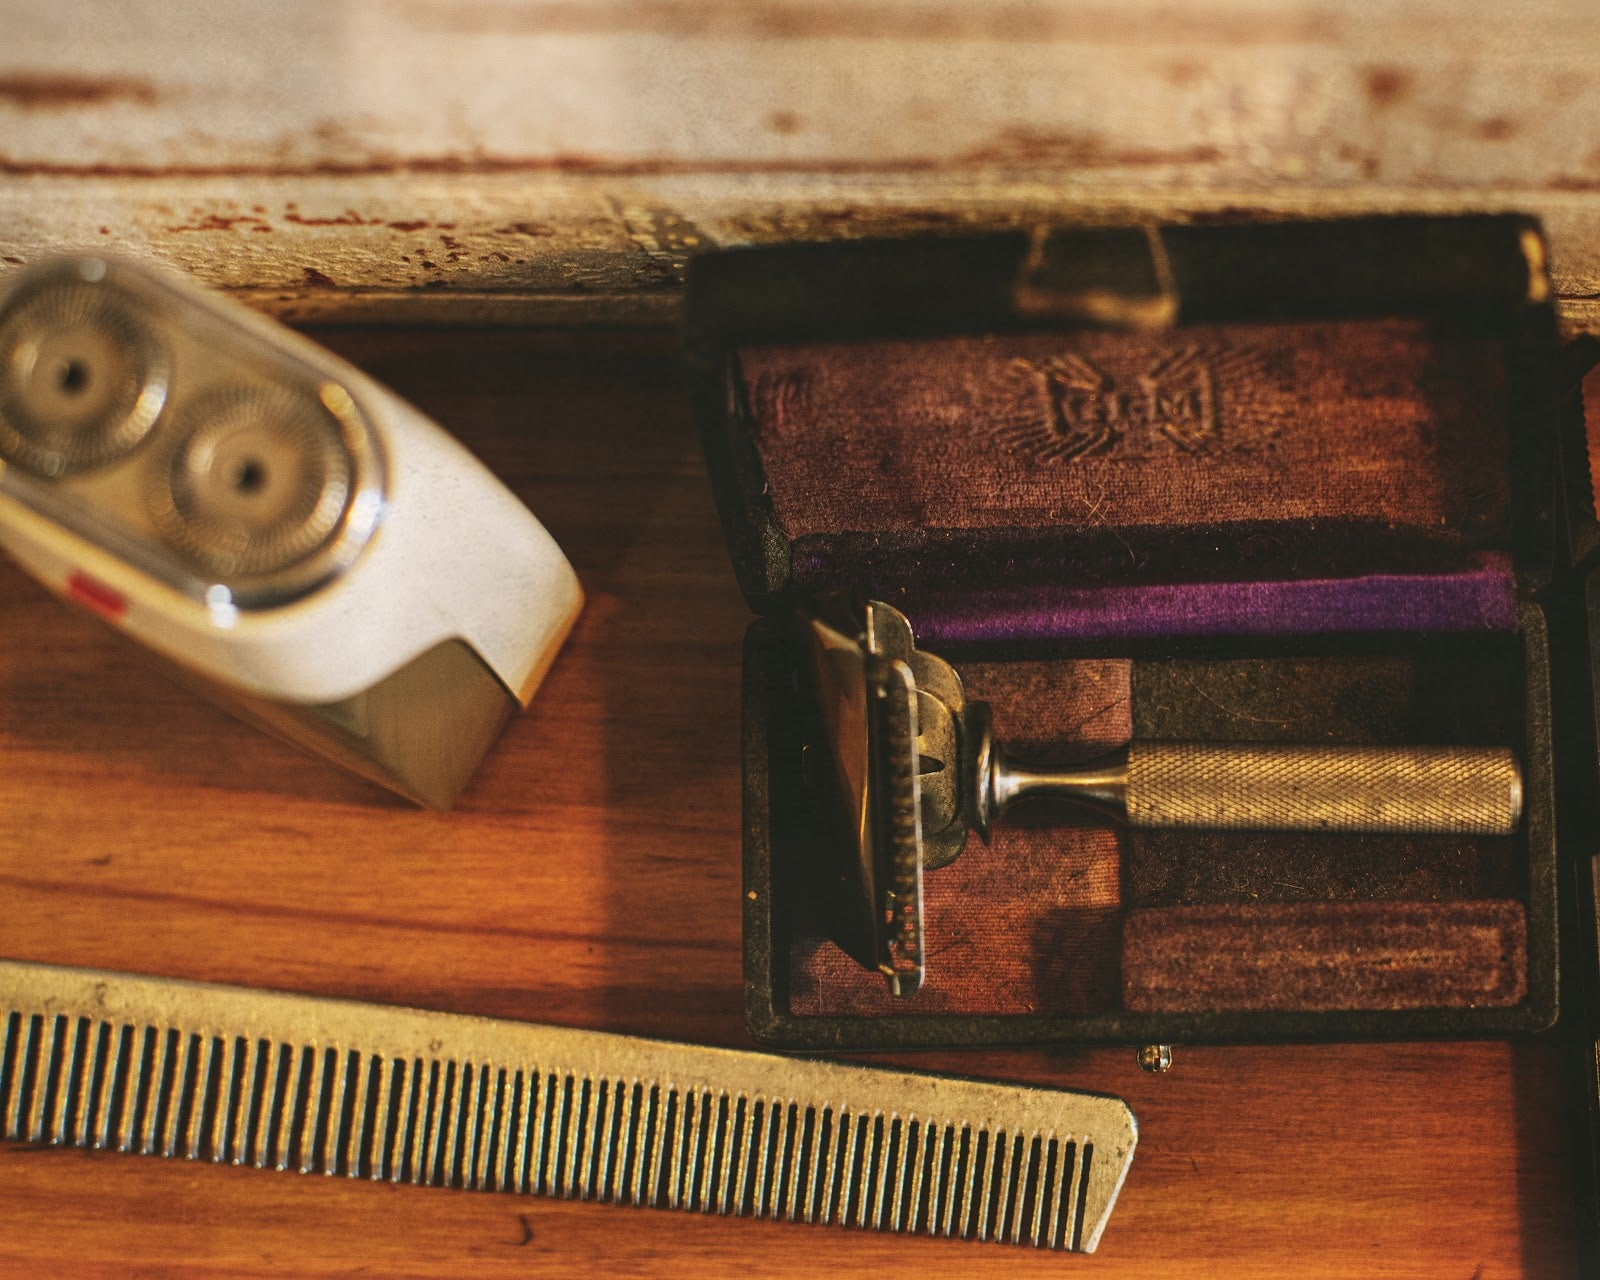 4 Reasons Why Men Should Want a Shaving Kit